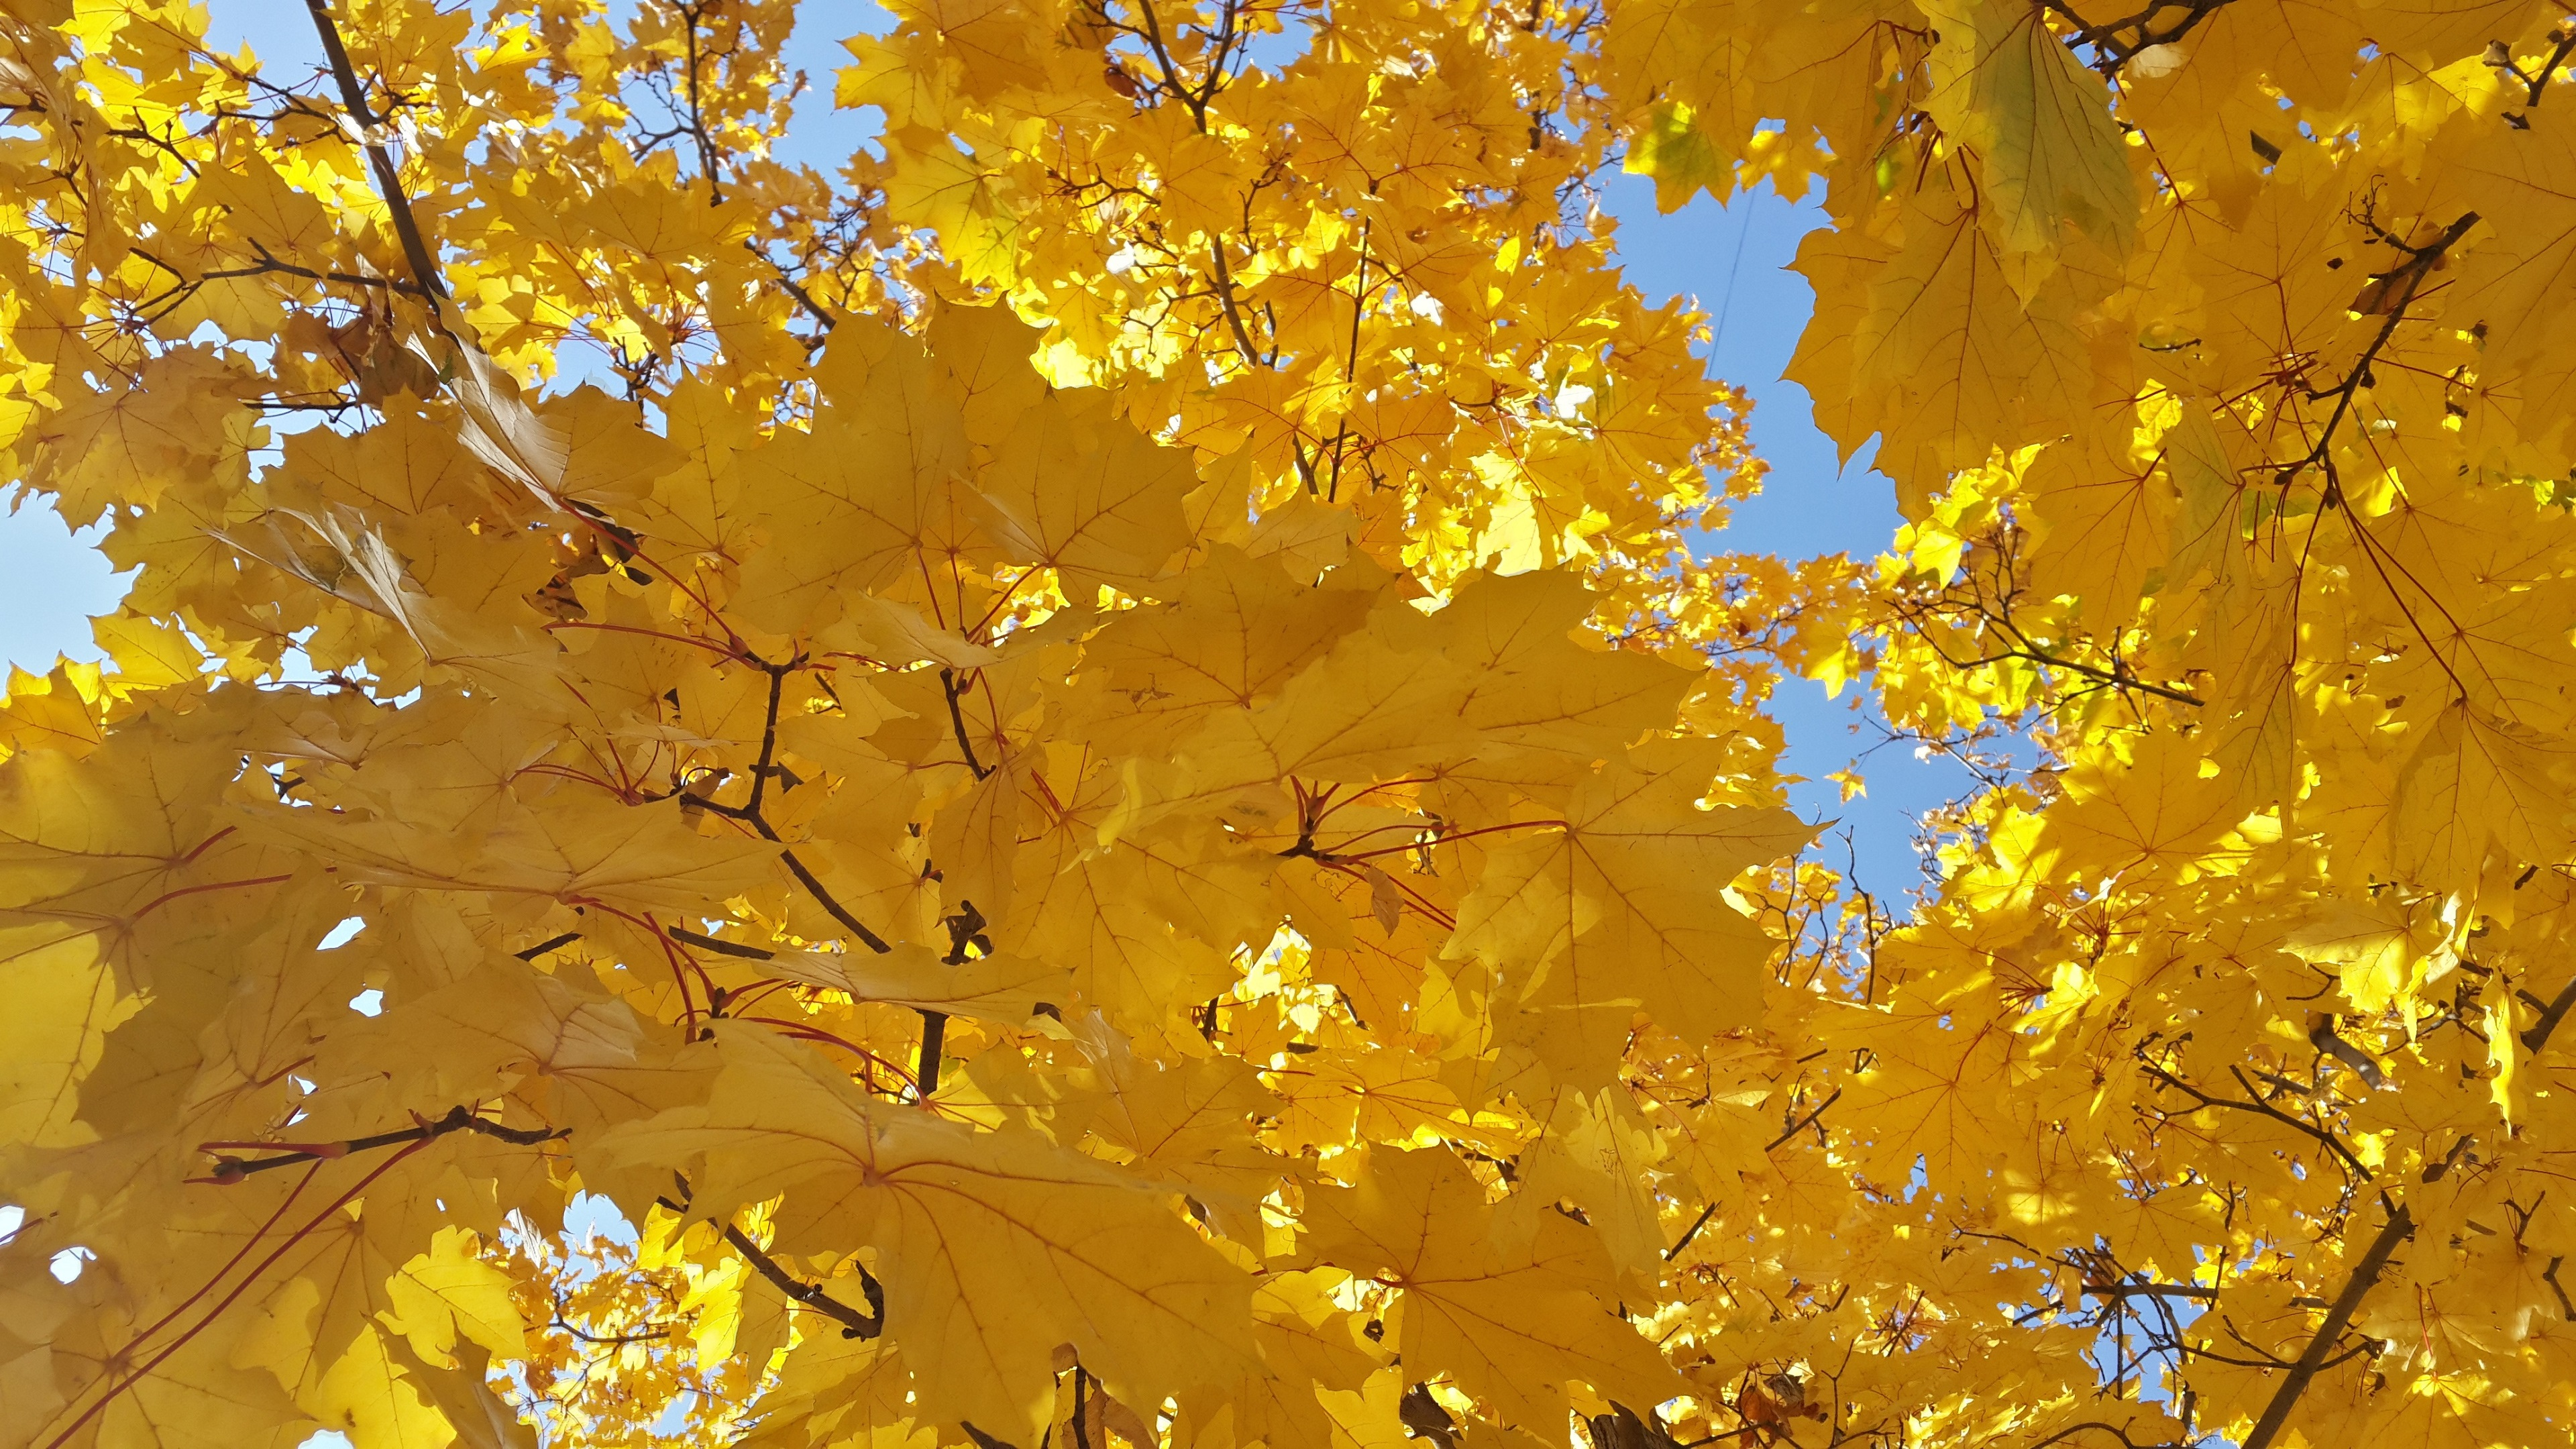 Yellow Leaves Wallpaper 4k Background Hd Wallpaper Background